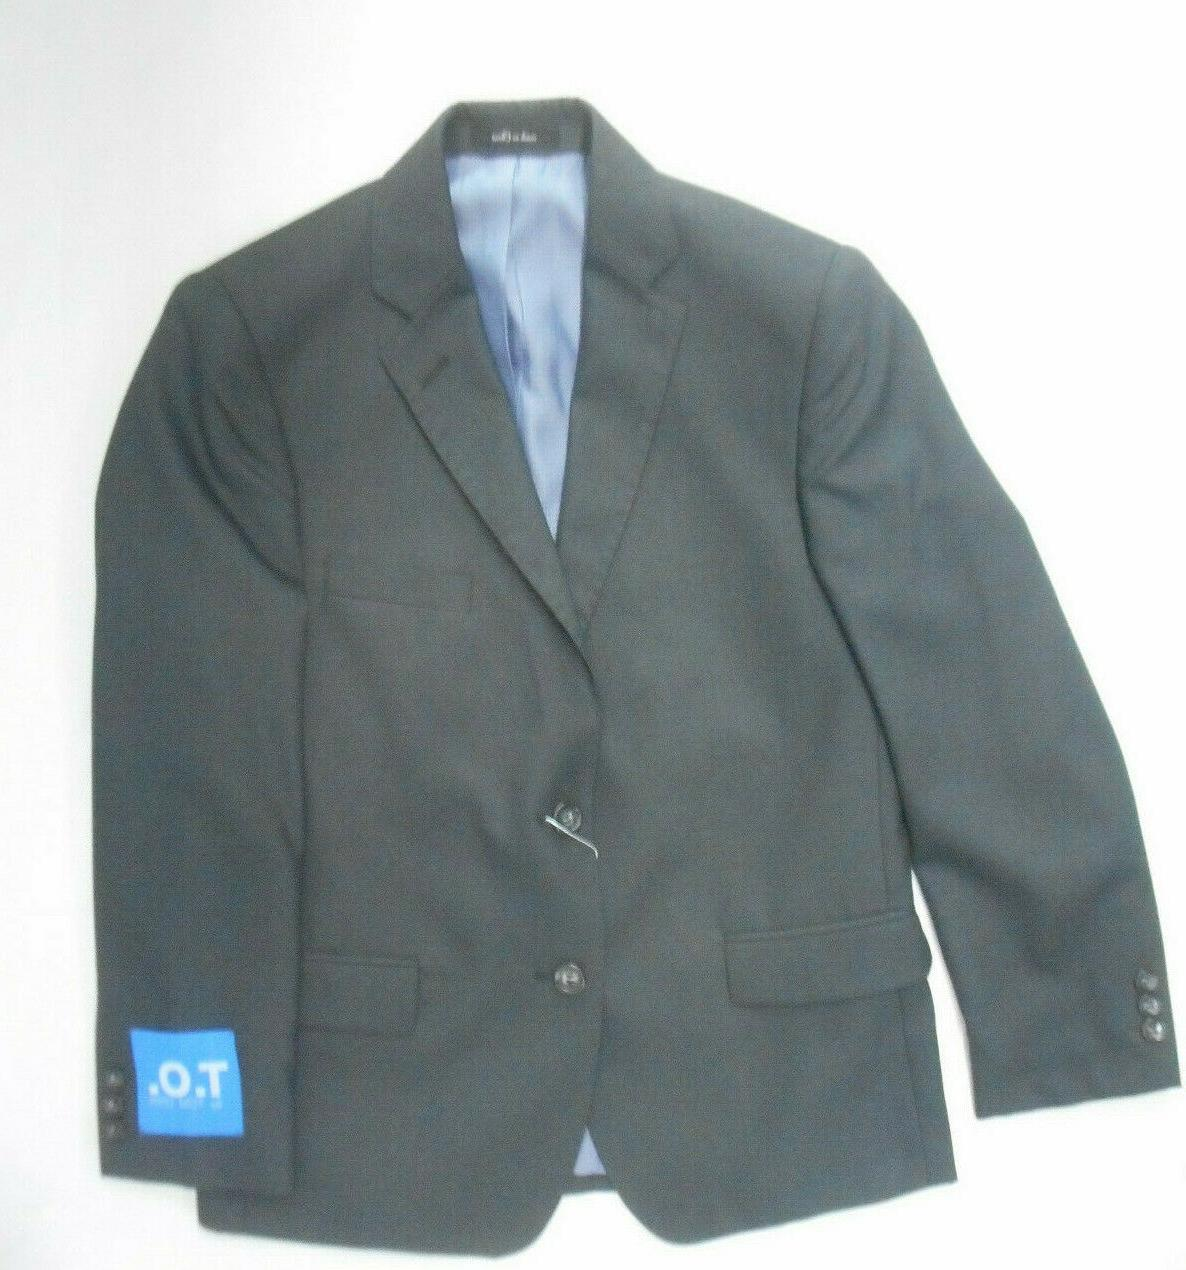 Boys T.O. Charcoal Gray 2PC. Suit Sizes Regular